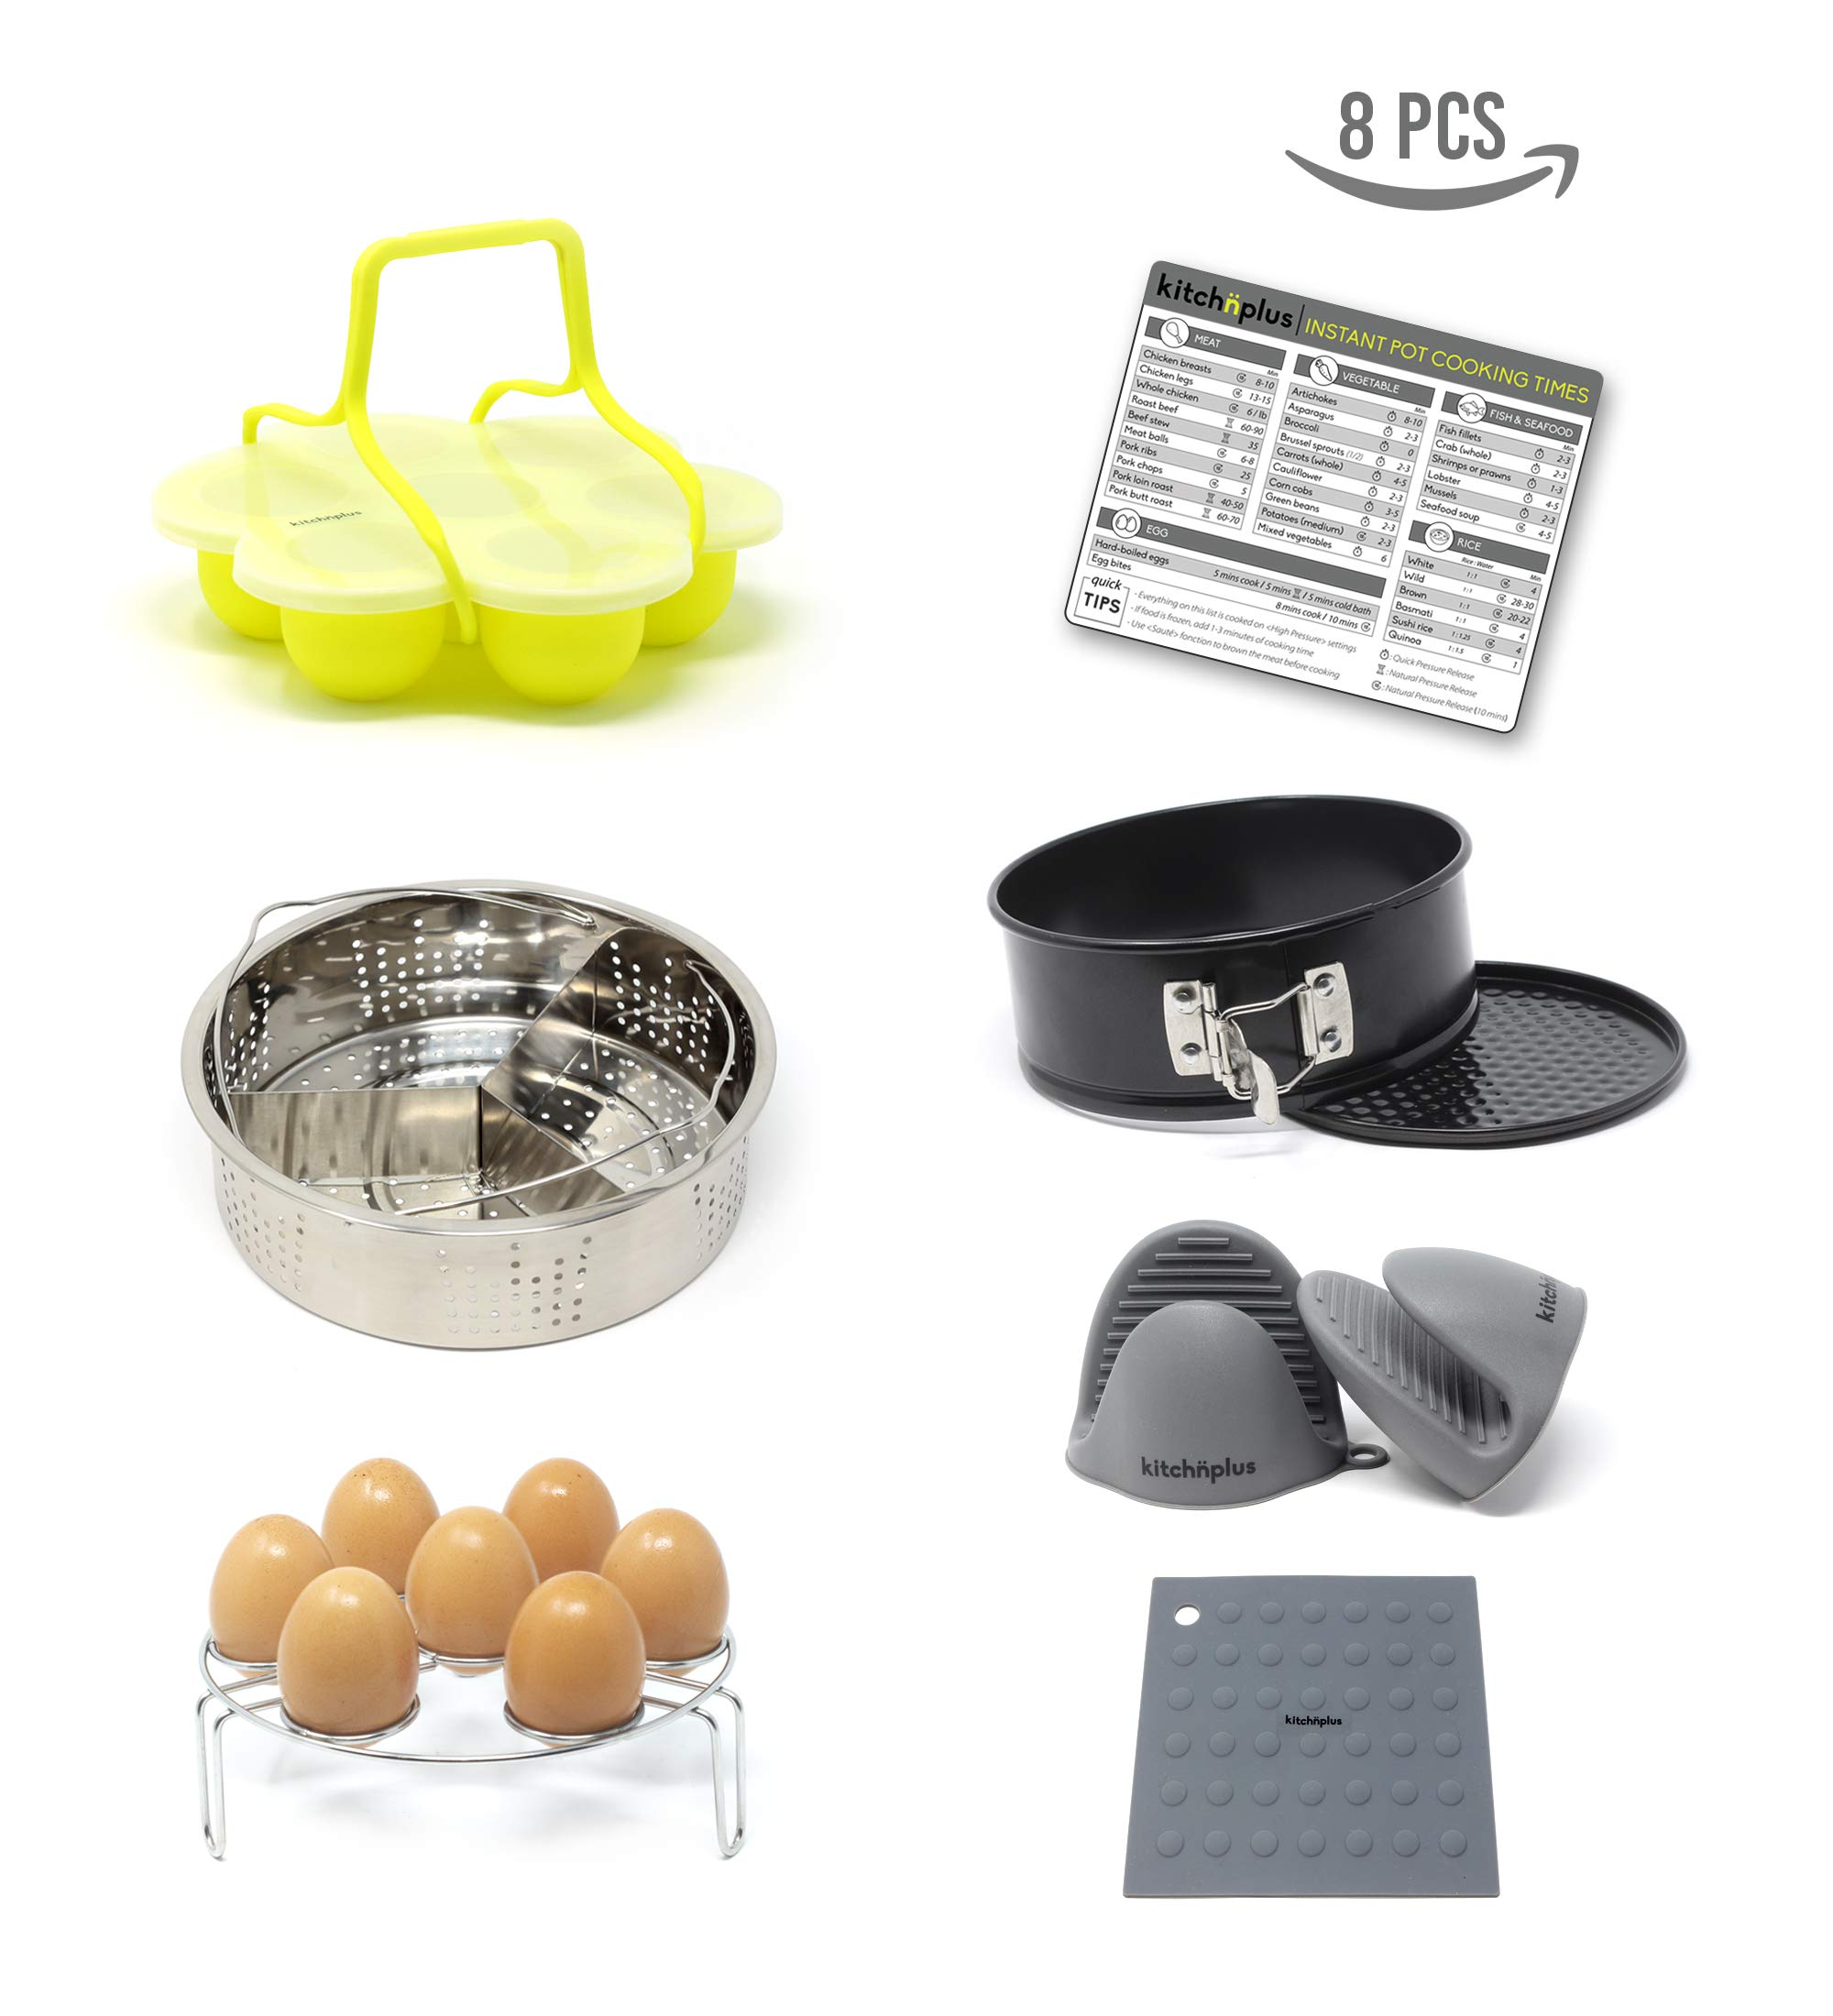 Kitchnplus - 8 pieces - Instant Pot Accessories Set + Bonus Cooking Times Sheet - Fits Instant Pot 5,6 and 8 Qt - Premium Quality Products : Egg Bites Mold + Handle, Springform Pan, Steamer Basket + Divider, Egg Rack, Silicone Oven Mitts, Silicone Trivet